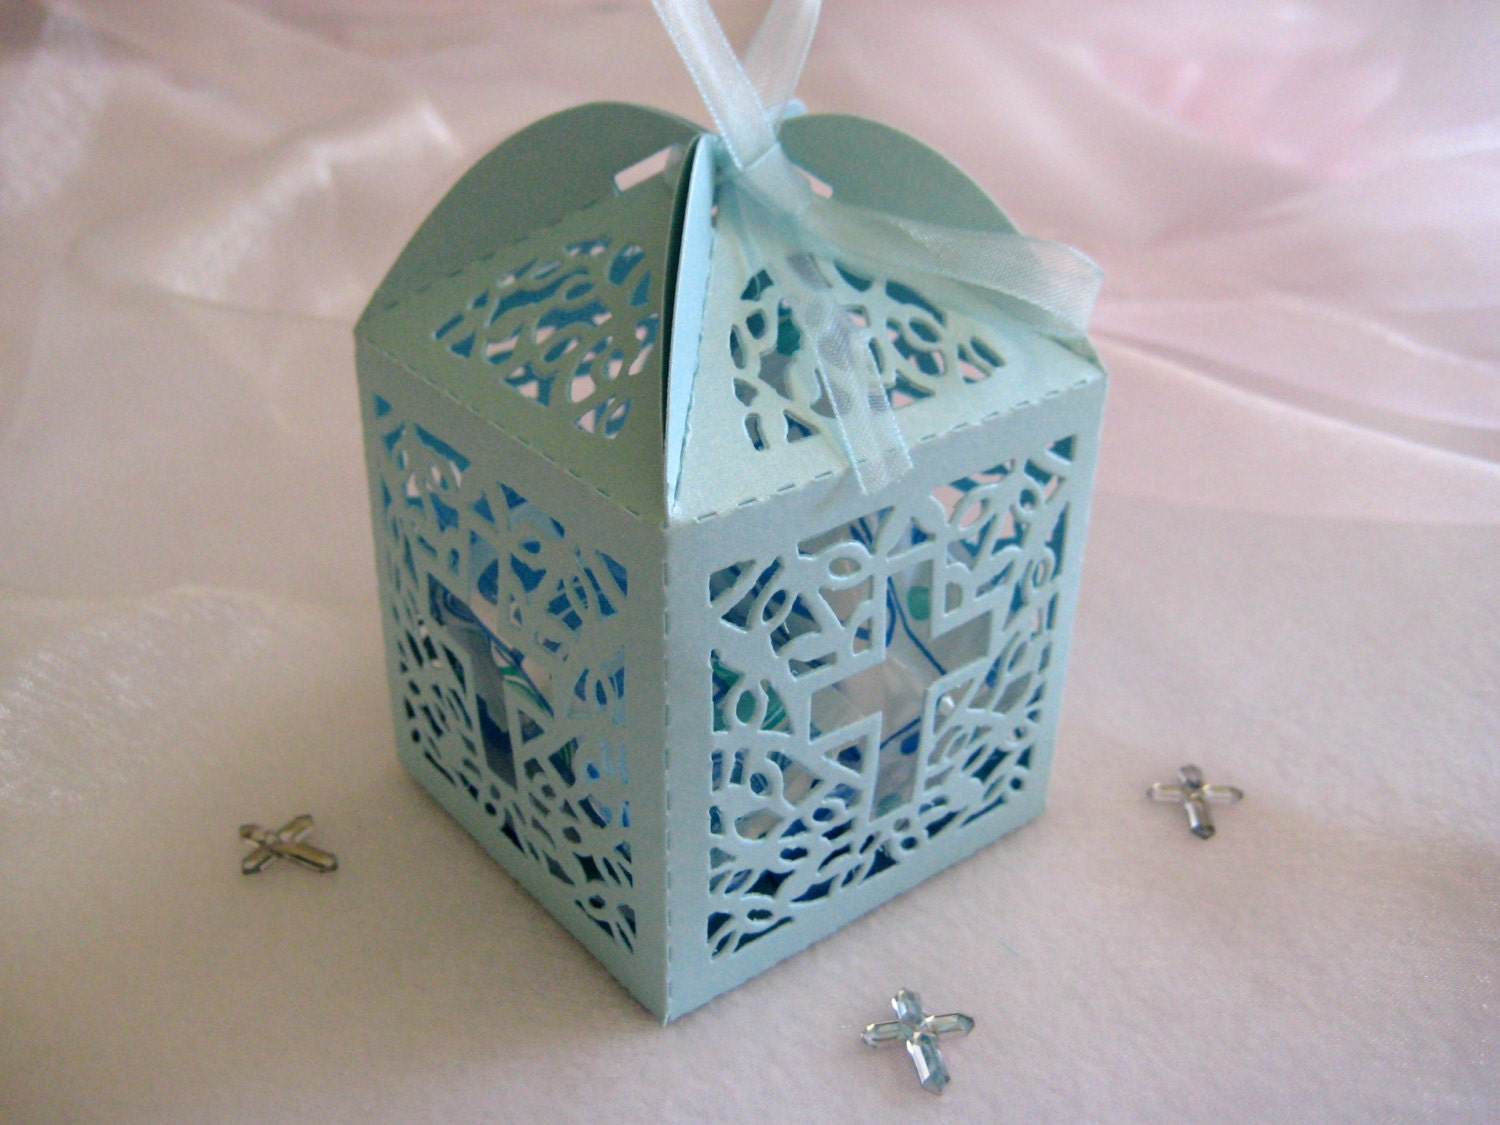 60 Pieces Holy Cross Blue Favor Boxes For Christening Favors